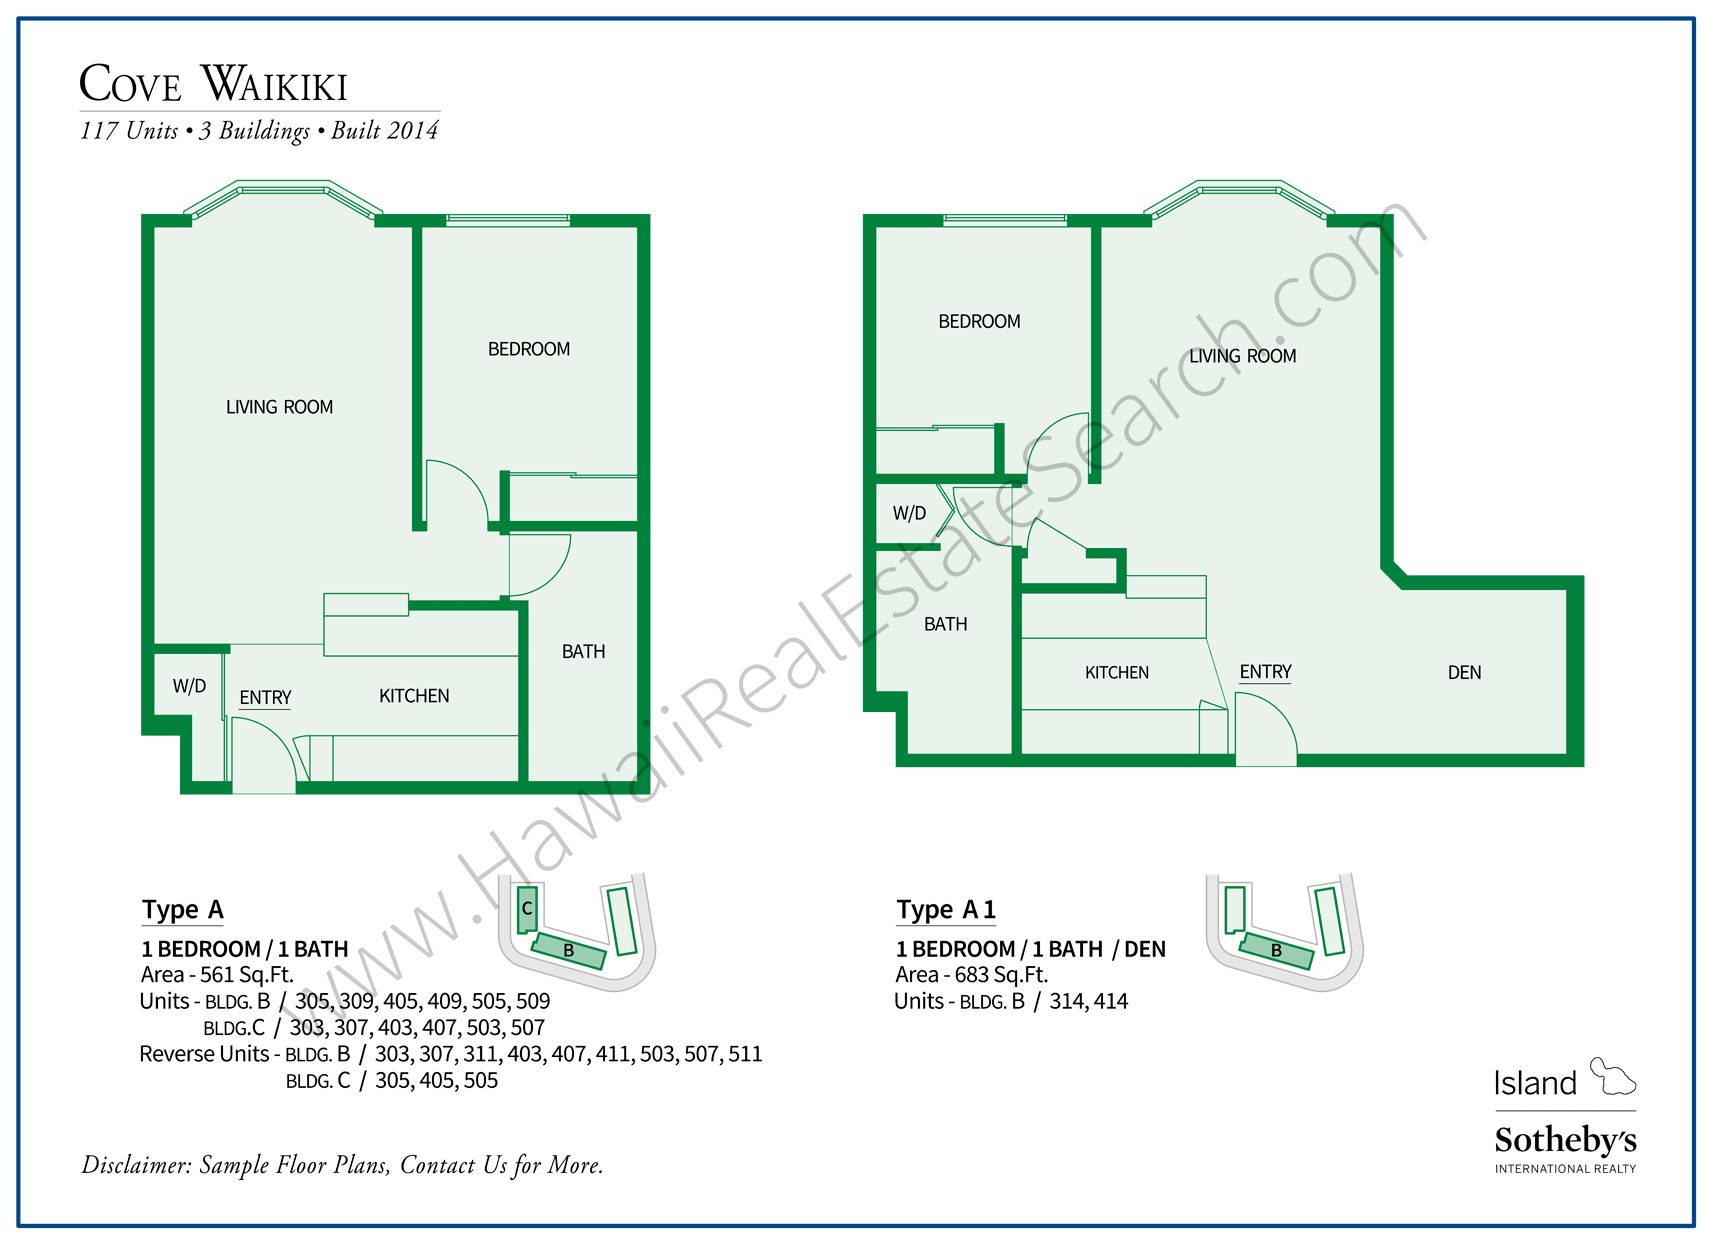 Floor Plans of Cove Waikiki Condos